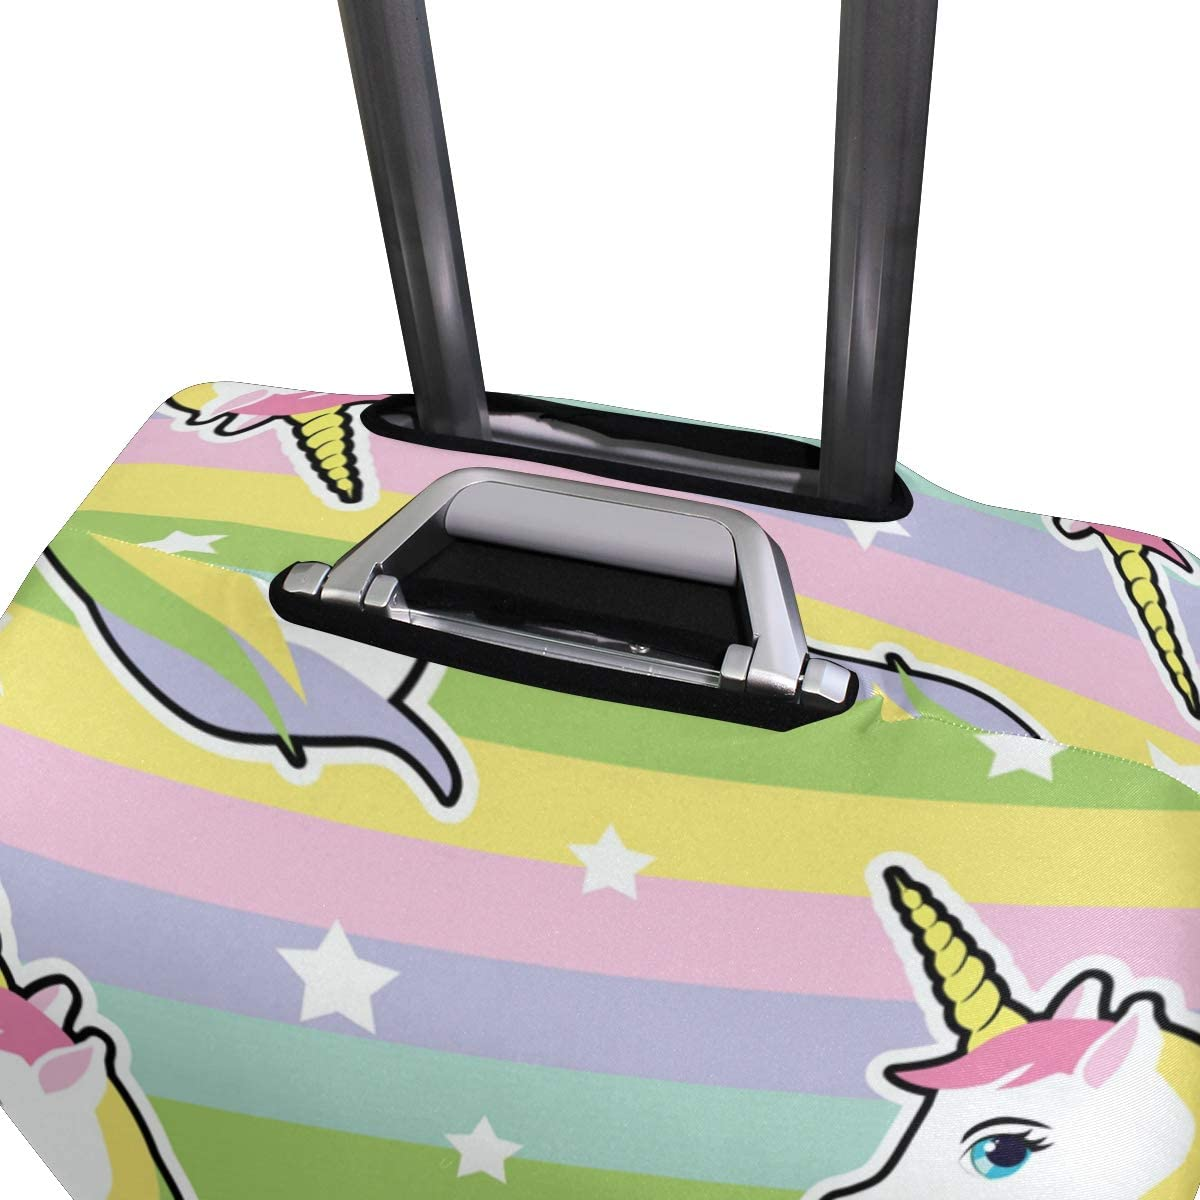 FOLPPLY Colorful Rainbow Hipster Unicorn Pattern Luggage Cover Baggage Suitcase Travel Protector Fit for 18-32 Inch